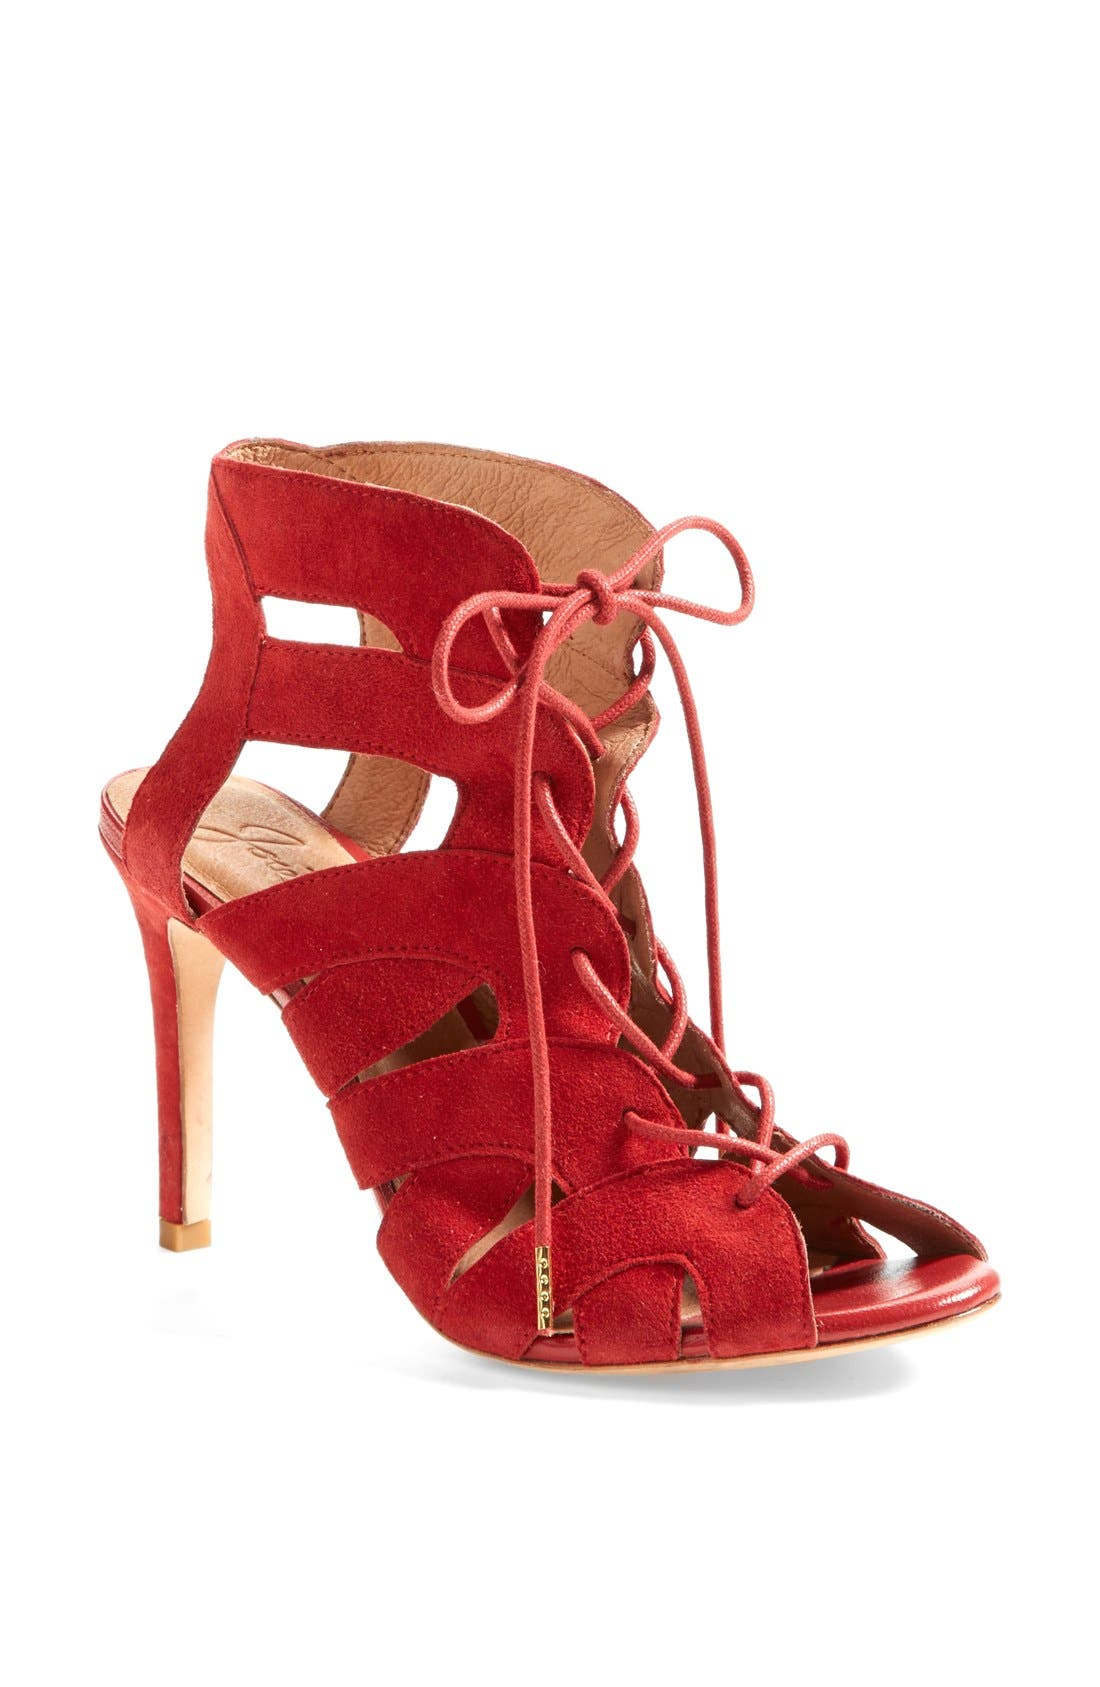 Alternate Image 1 Selected - Joie 'Bonnie' Sandal (Women)